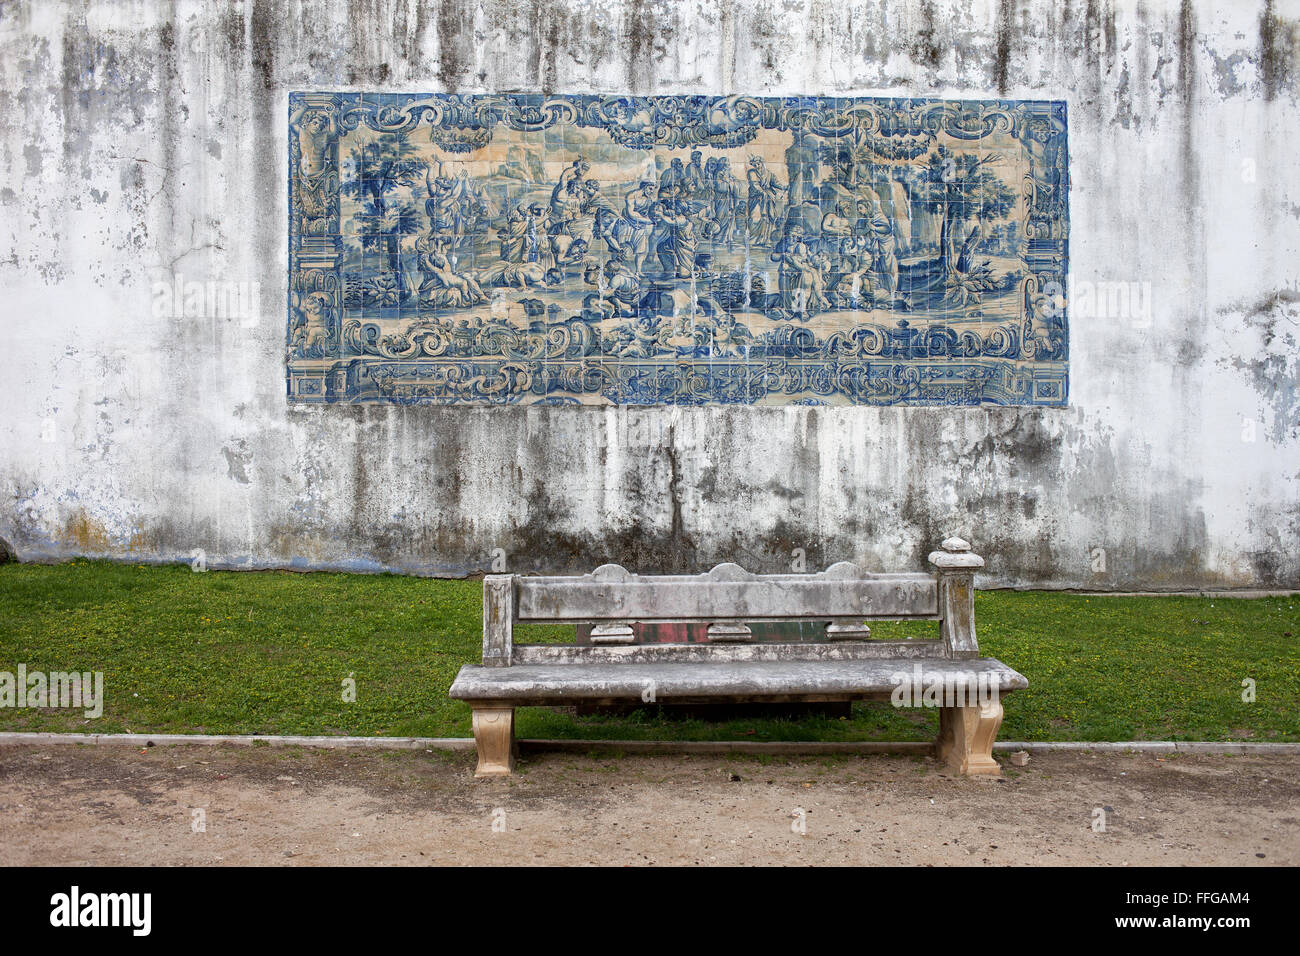 Azulejos tiles on Agues Livres Aqueduct wall in Lisbon, Portugal - Stock Image